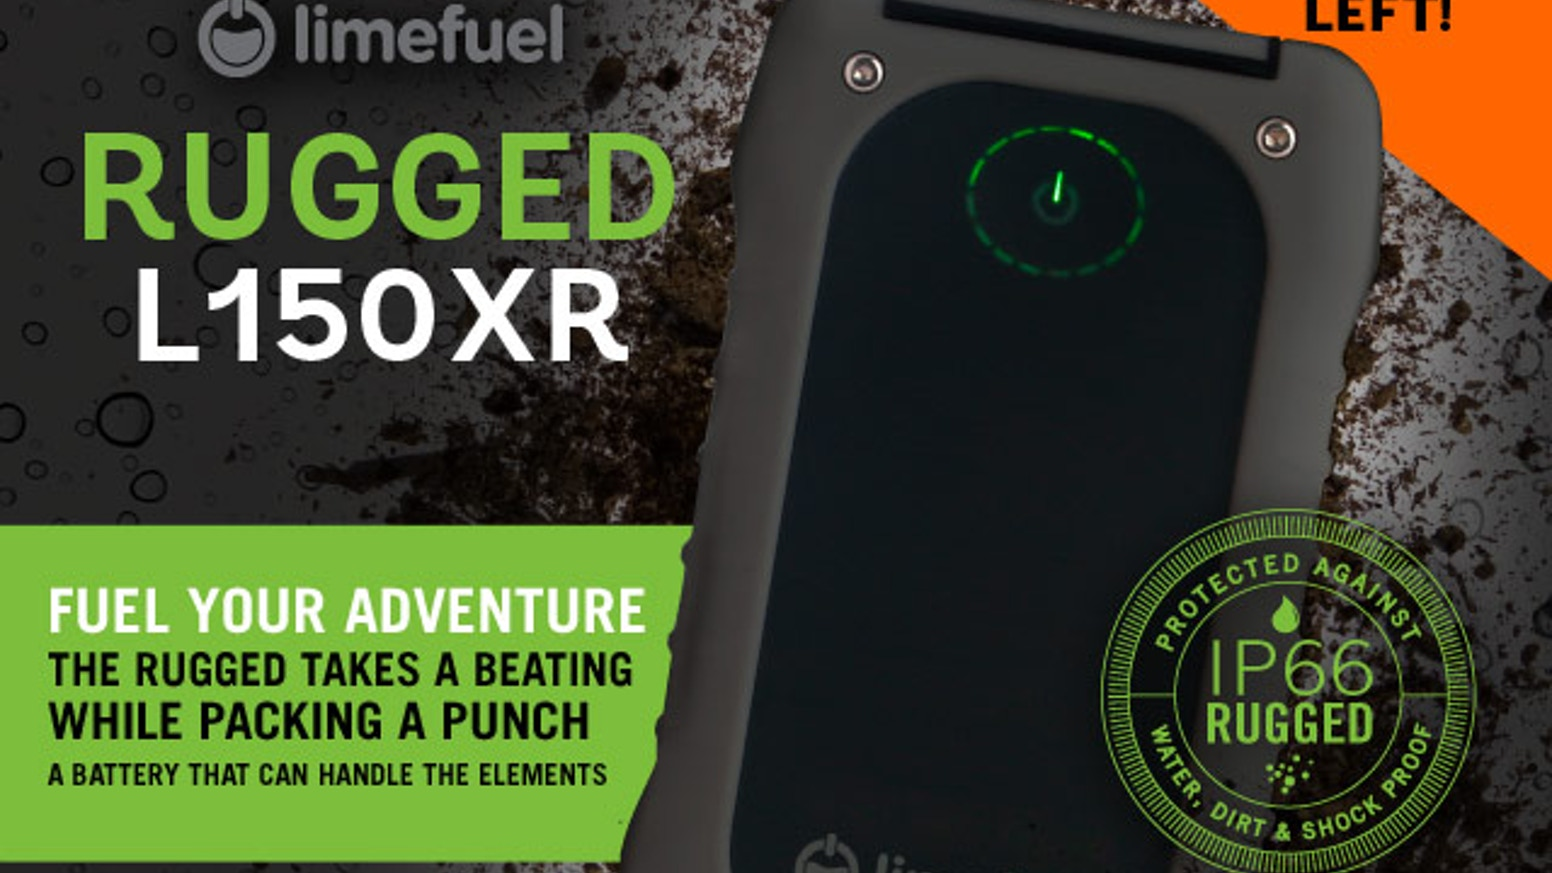 High capacity all terrain external battery keeps your devices fueled for life's adventures!